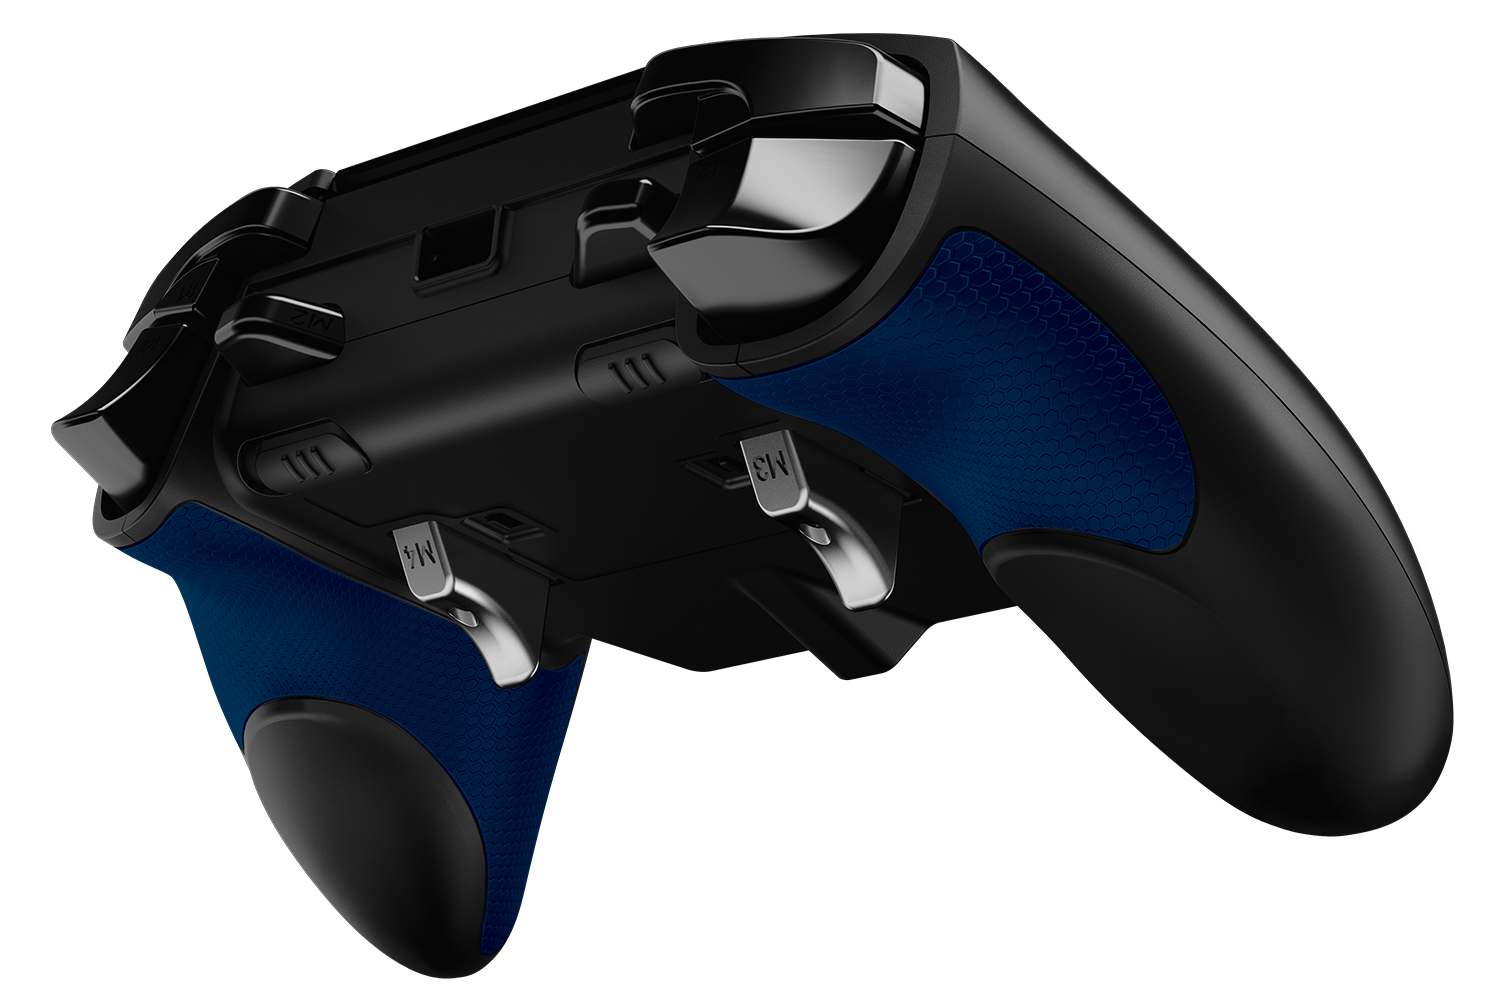 Razer Raiju Ps4 Controller Review Esports News Uk Firmware razer raiju ultimate 1.04 1.05.00. razer raiju ps4 controller review